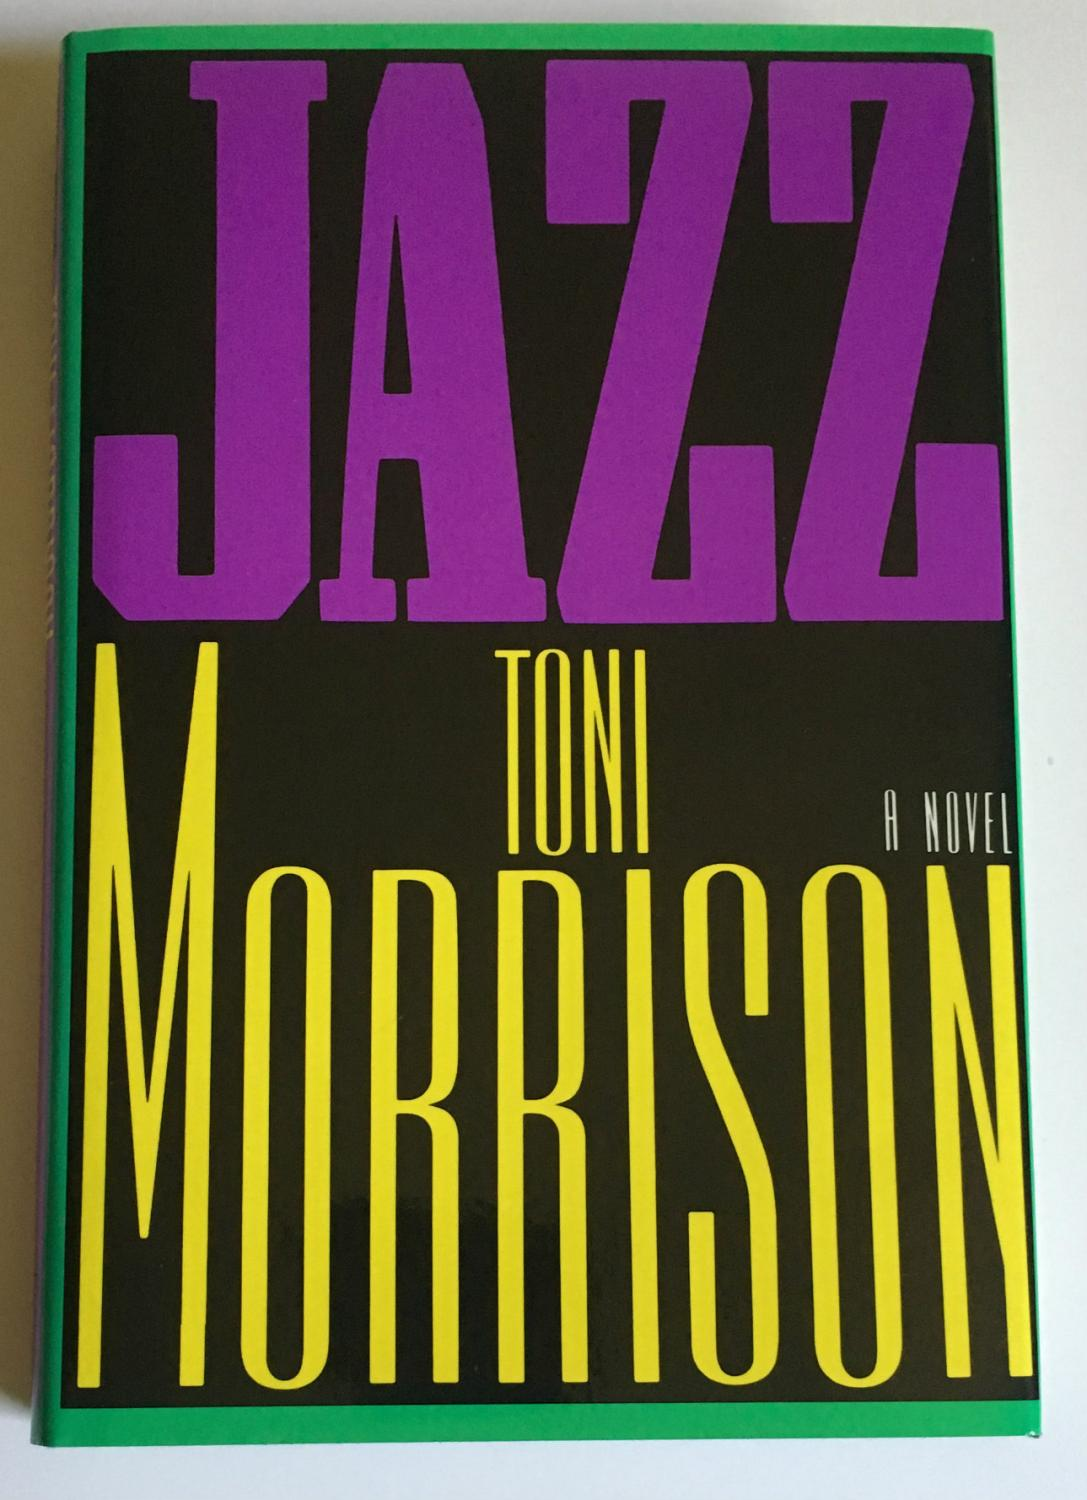 an analysis of the book jazz by toni morrison Immediately download the jazz summary, chapter-by-chapter analysis, book notes jazz summary toni morrison jazz summary jazz is the story of a love affair.